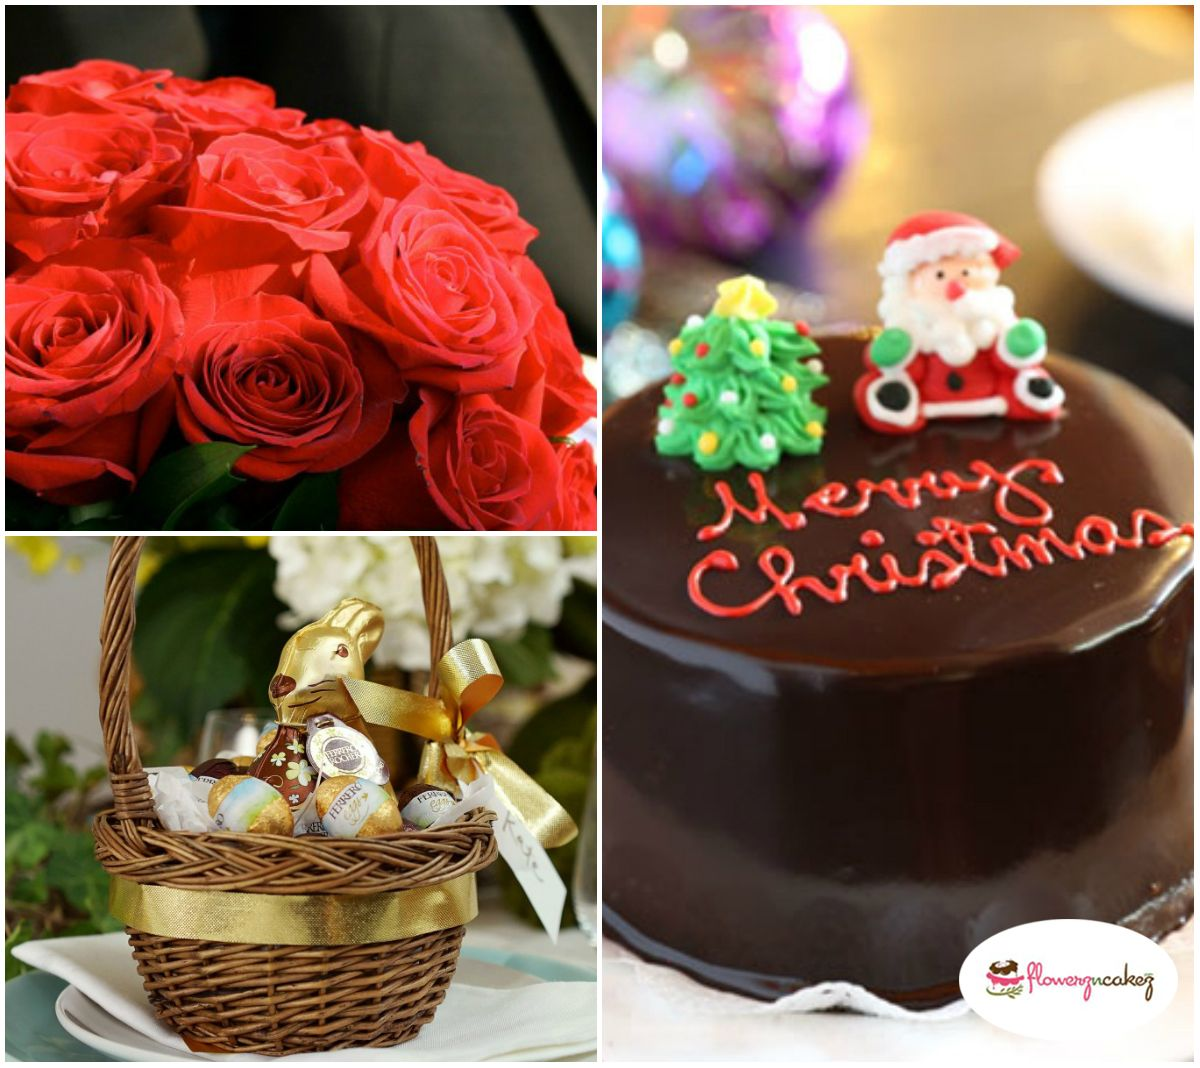 Christmas isnt a season its a feeling just 6 days left http are you in search of buying yummy cakes flowers and chocolates or gift eye grabbing combo packs to your loved ones flowerzncakez offers you ample choices izmirmasajfo